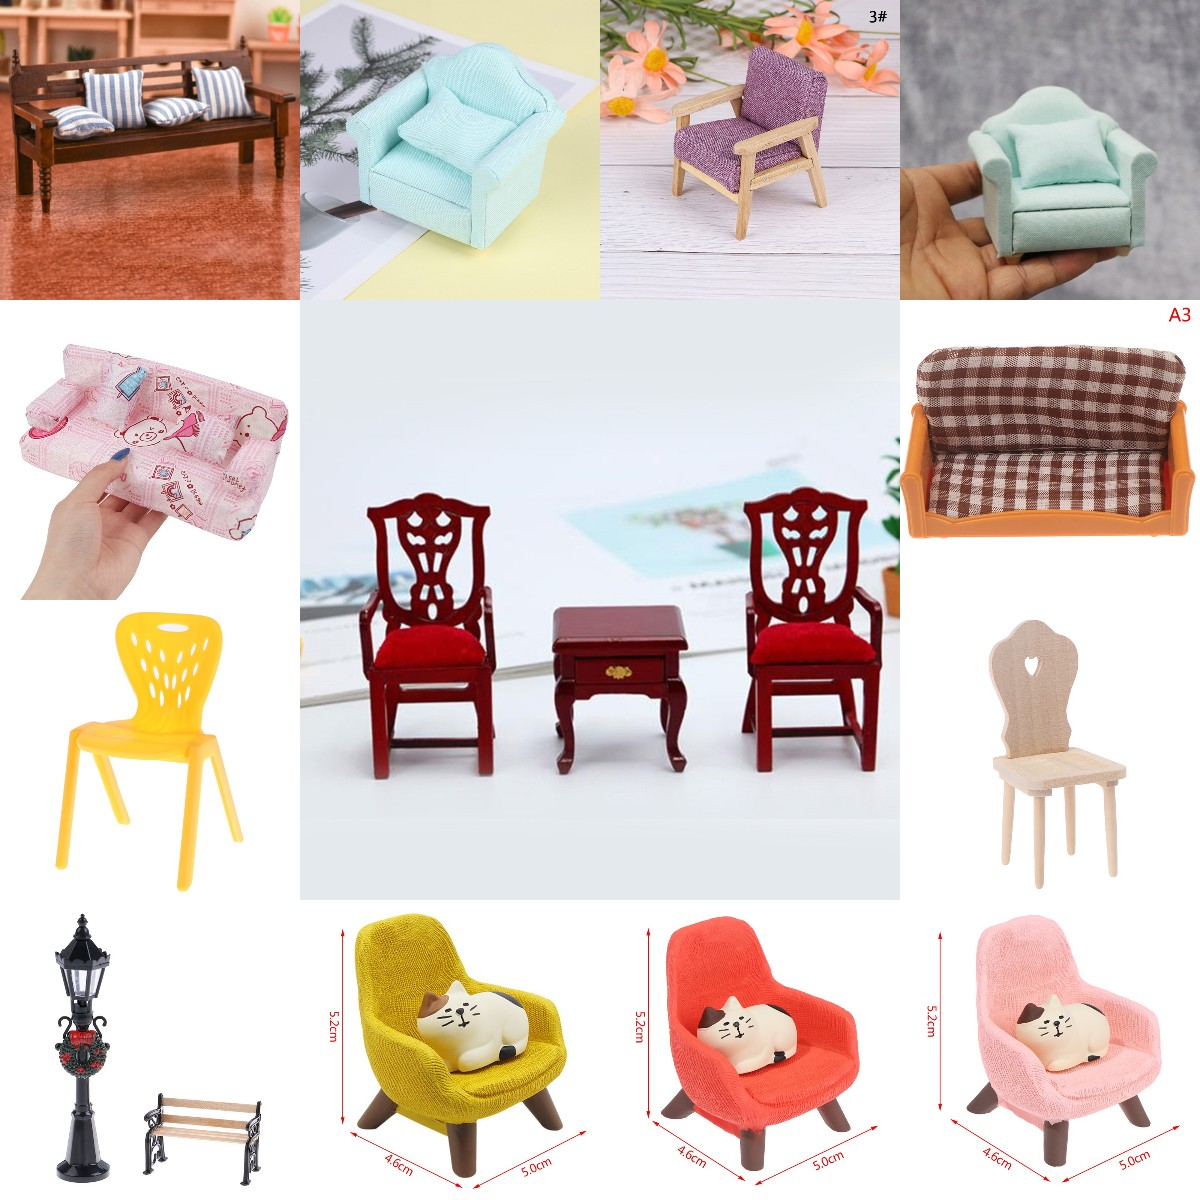 Hot Sale Chair Pillow Stool Sofa For Couch Bed Dollhouse Street Light Lamp Furniture Toys Doll House Decoration Accessories